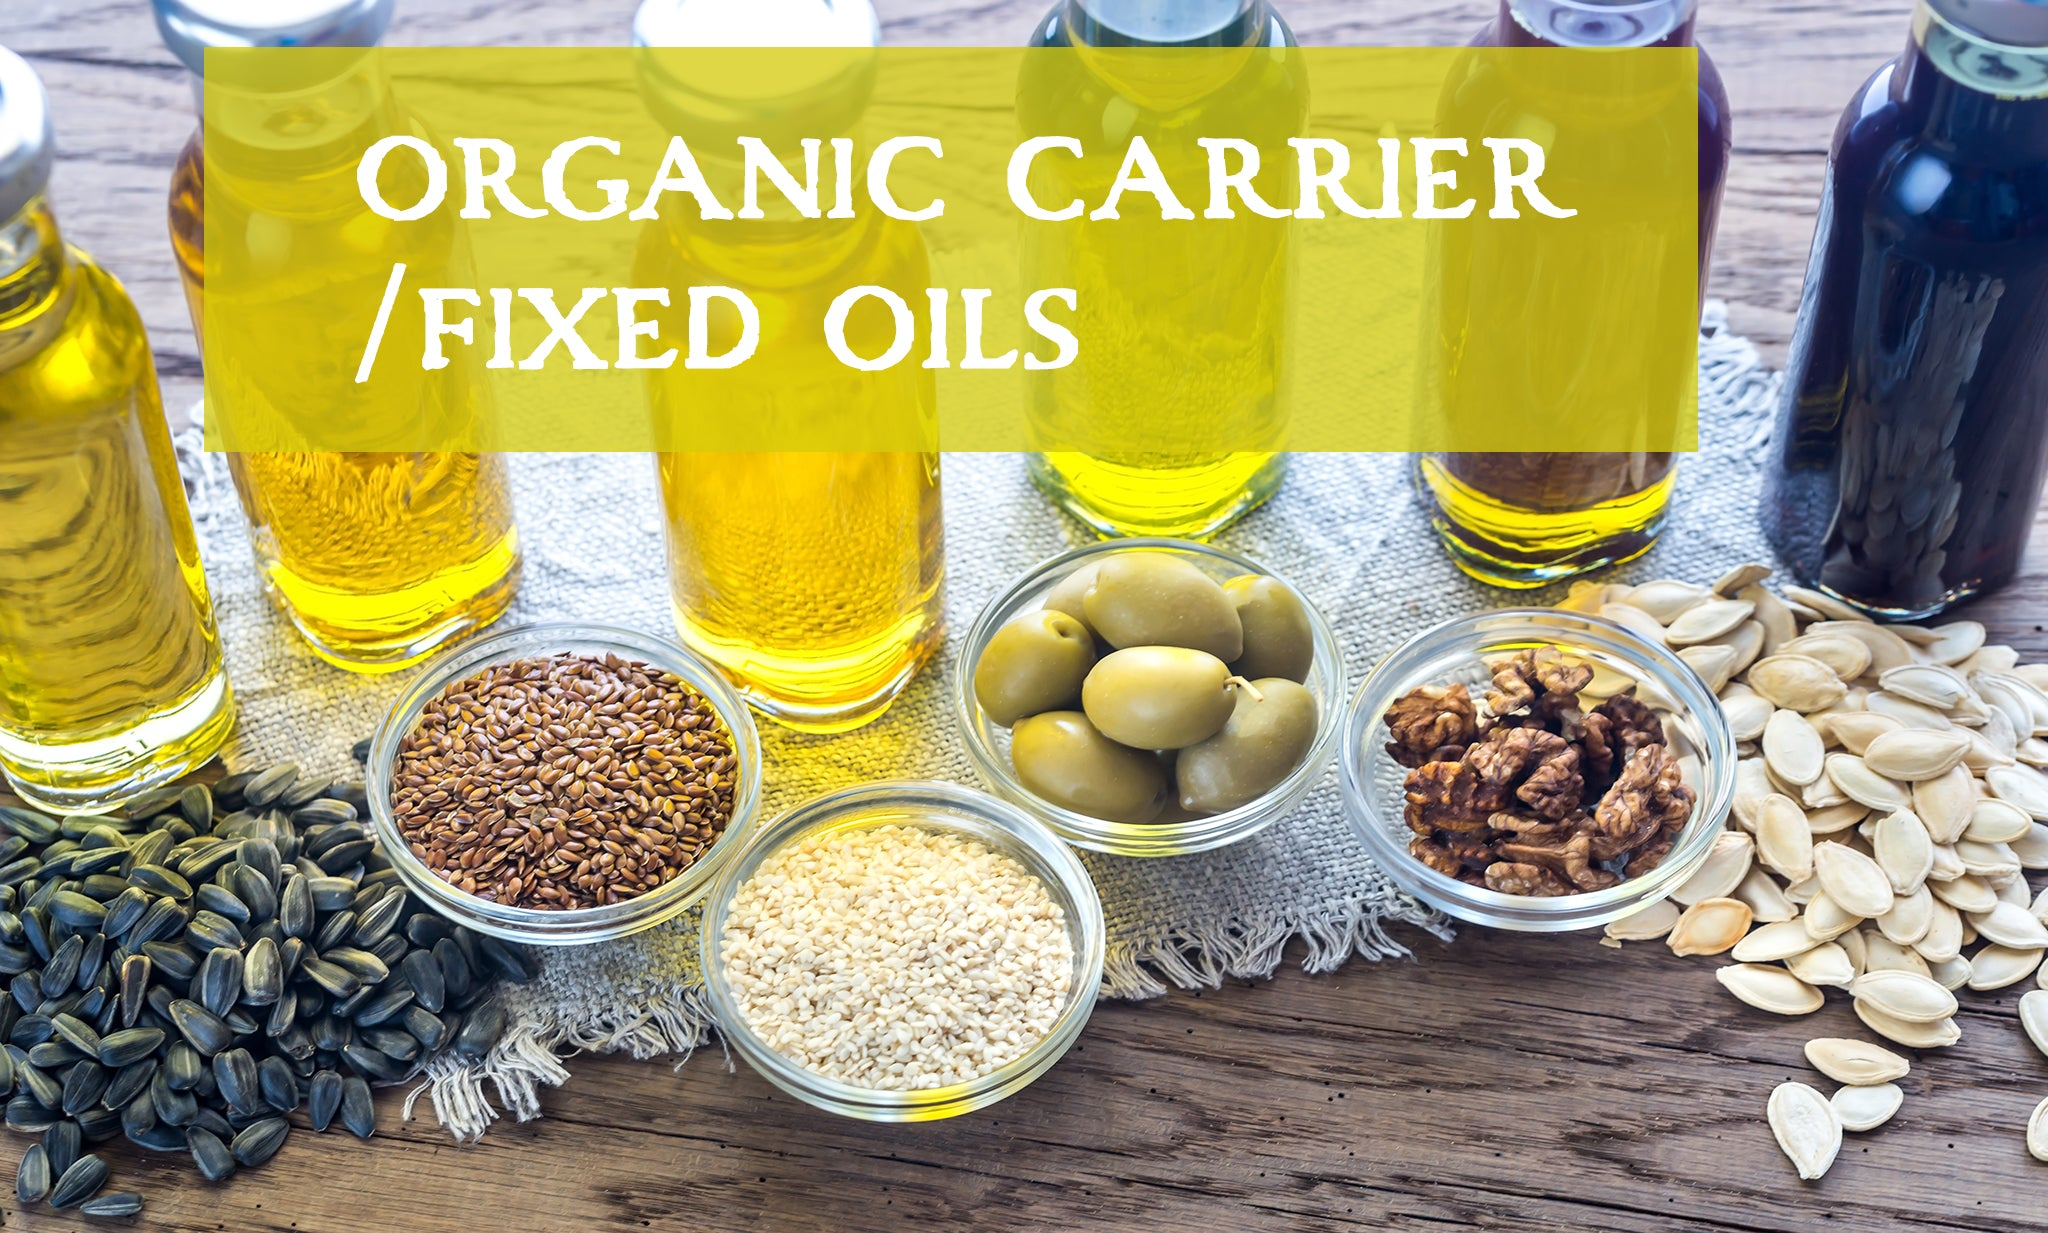 certified organic plant based carrier fixed oils for aromatherapy and skin care